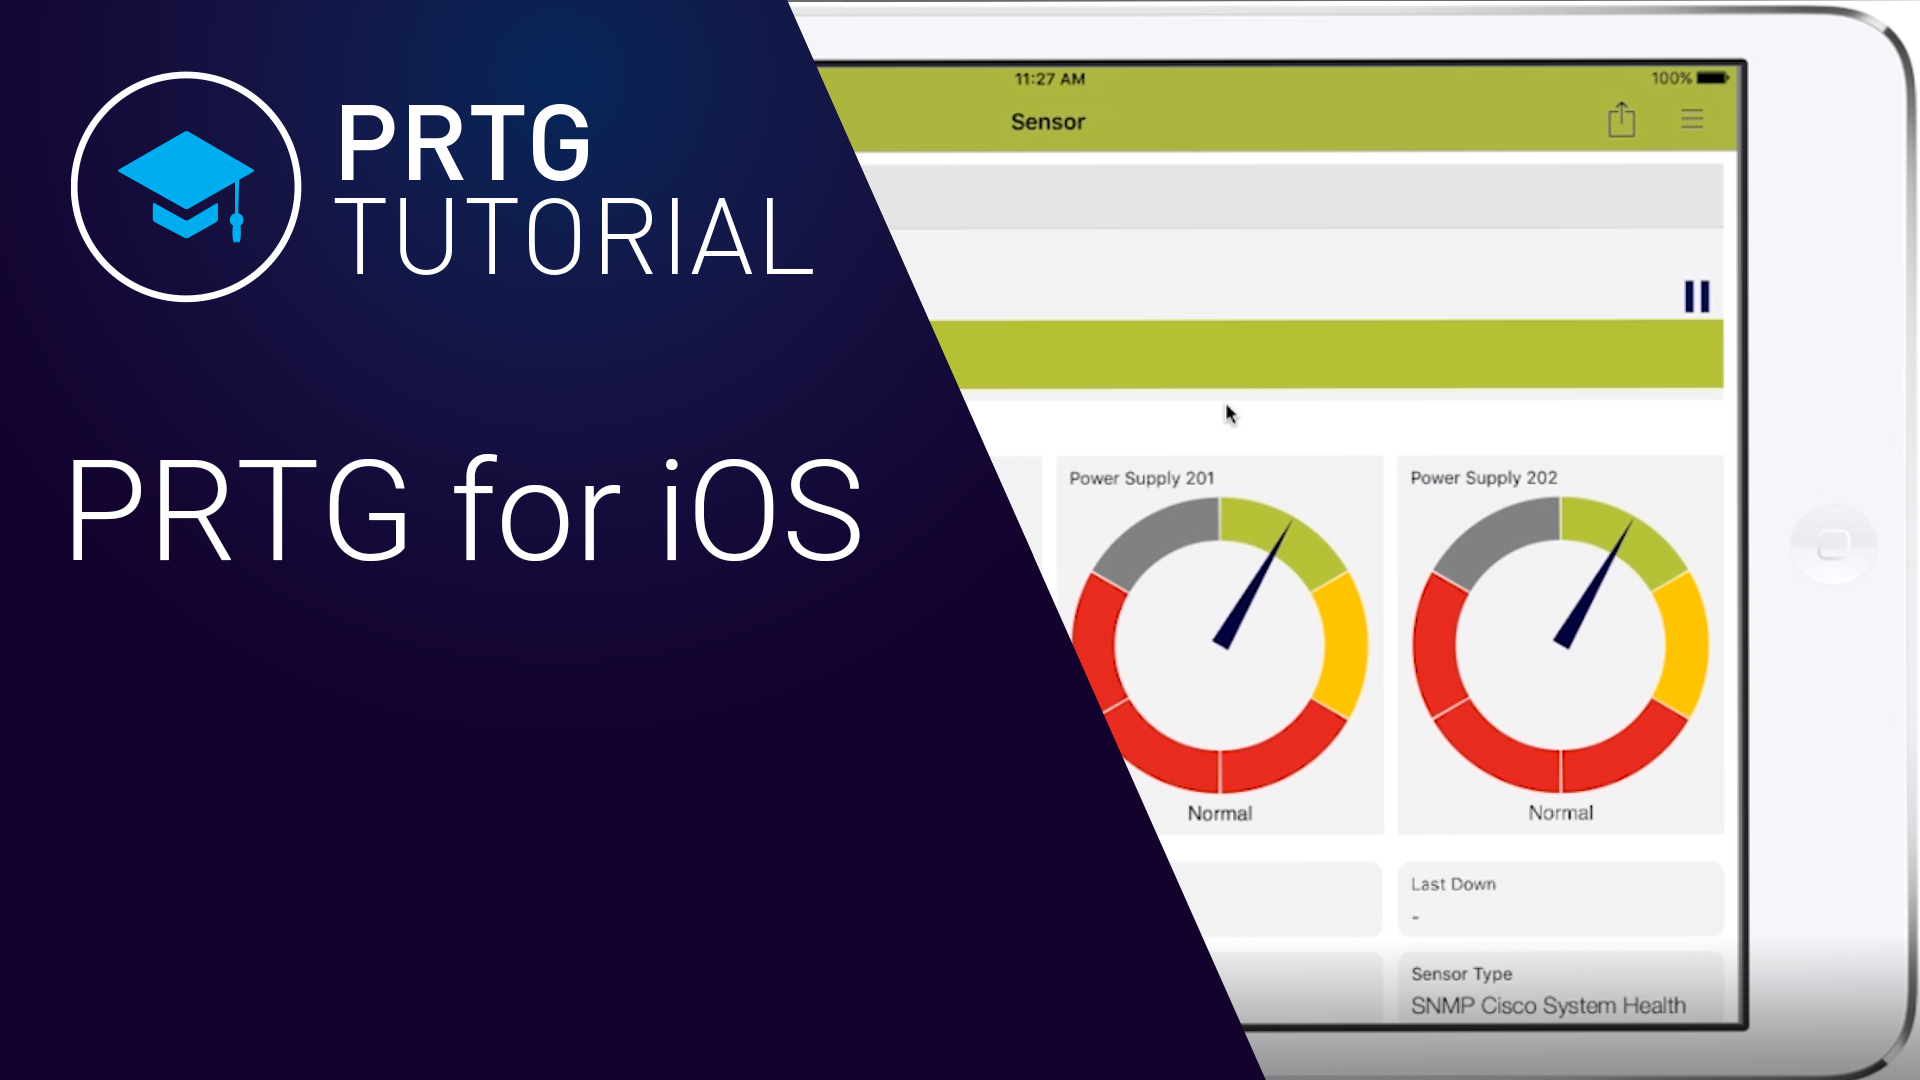 PRTG for iOS - Tutorial (Videos)